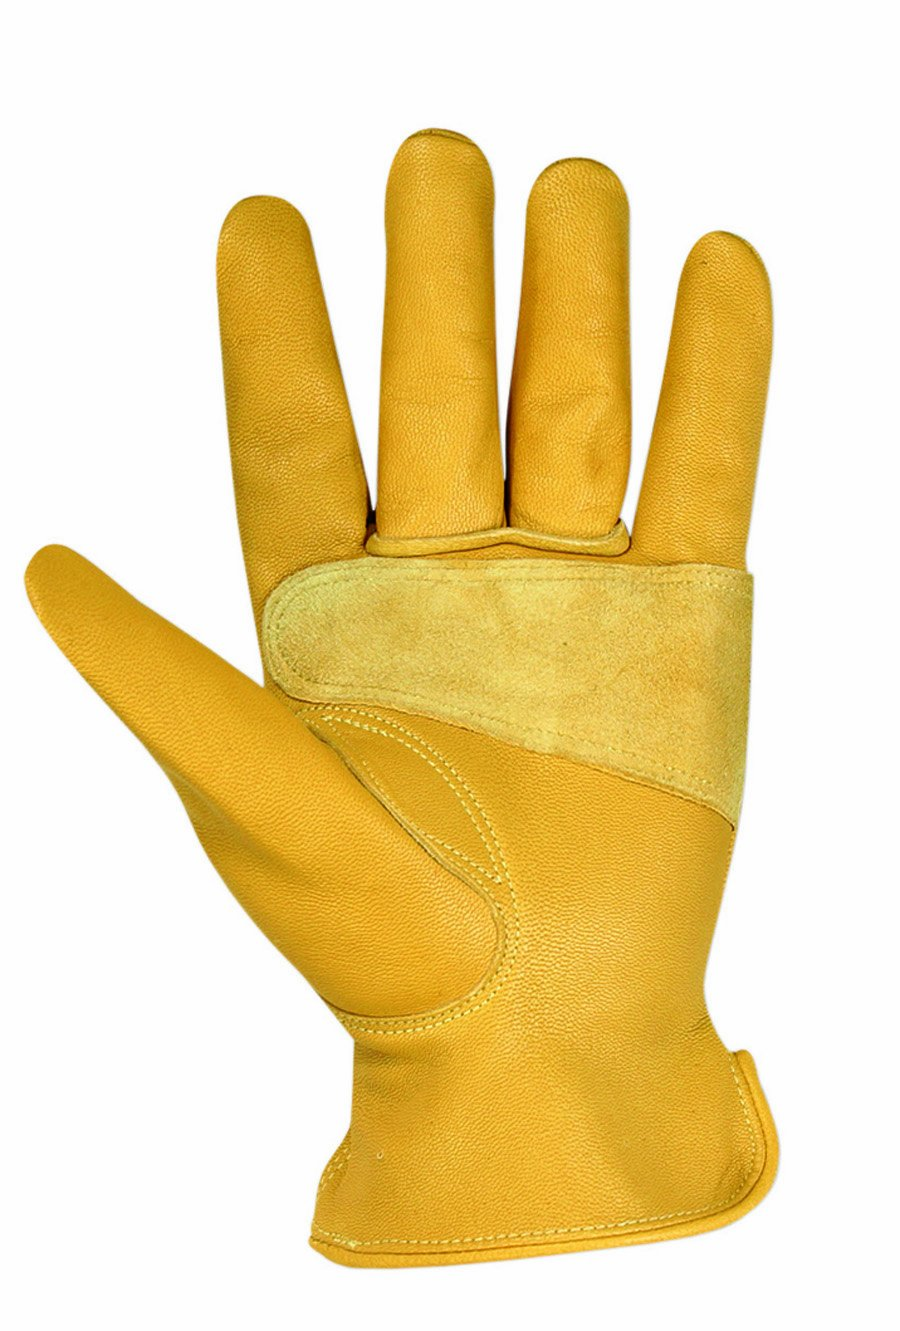 Leather work gloves best price - Custom Leathercraft 2060l Top Grain Goatskin Work Gloves Large Leather Work Gloves Amazon Com